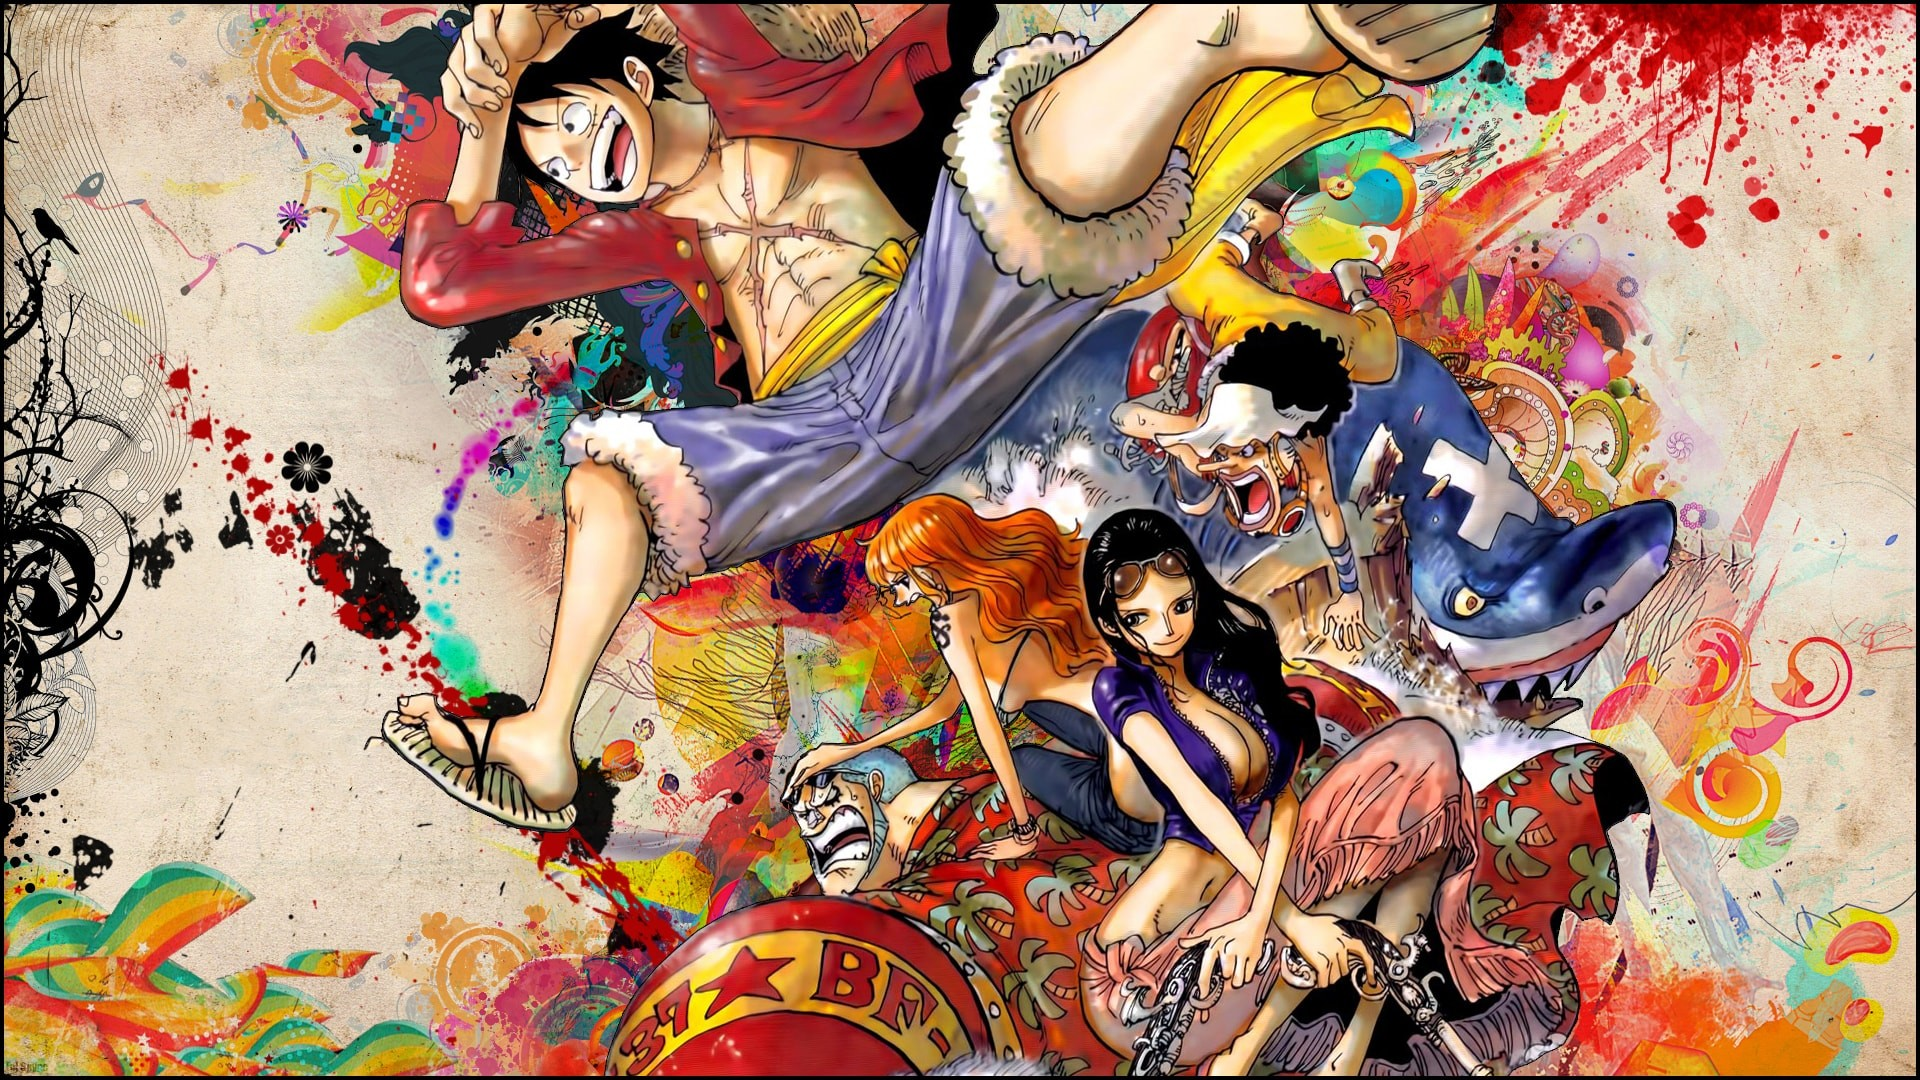 1920x1080 Wallpaper Anime Franky One Piece Nami Nico Robin Strawhat Pirates #105  CoolWallpapers.site